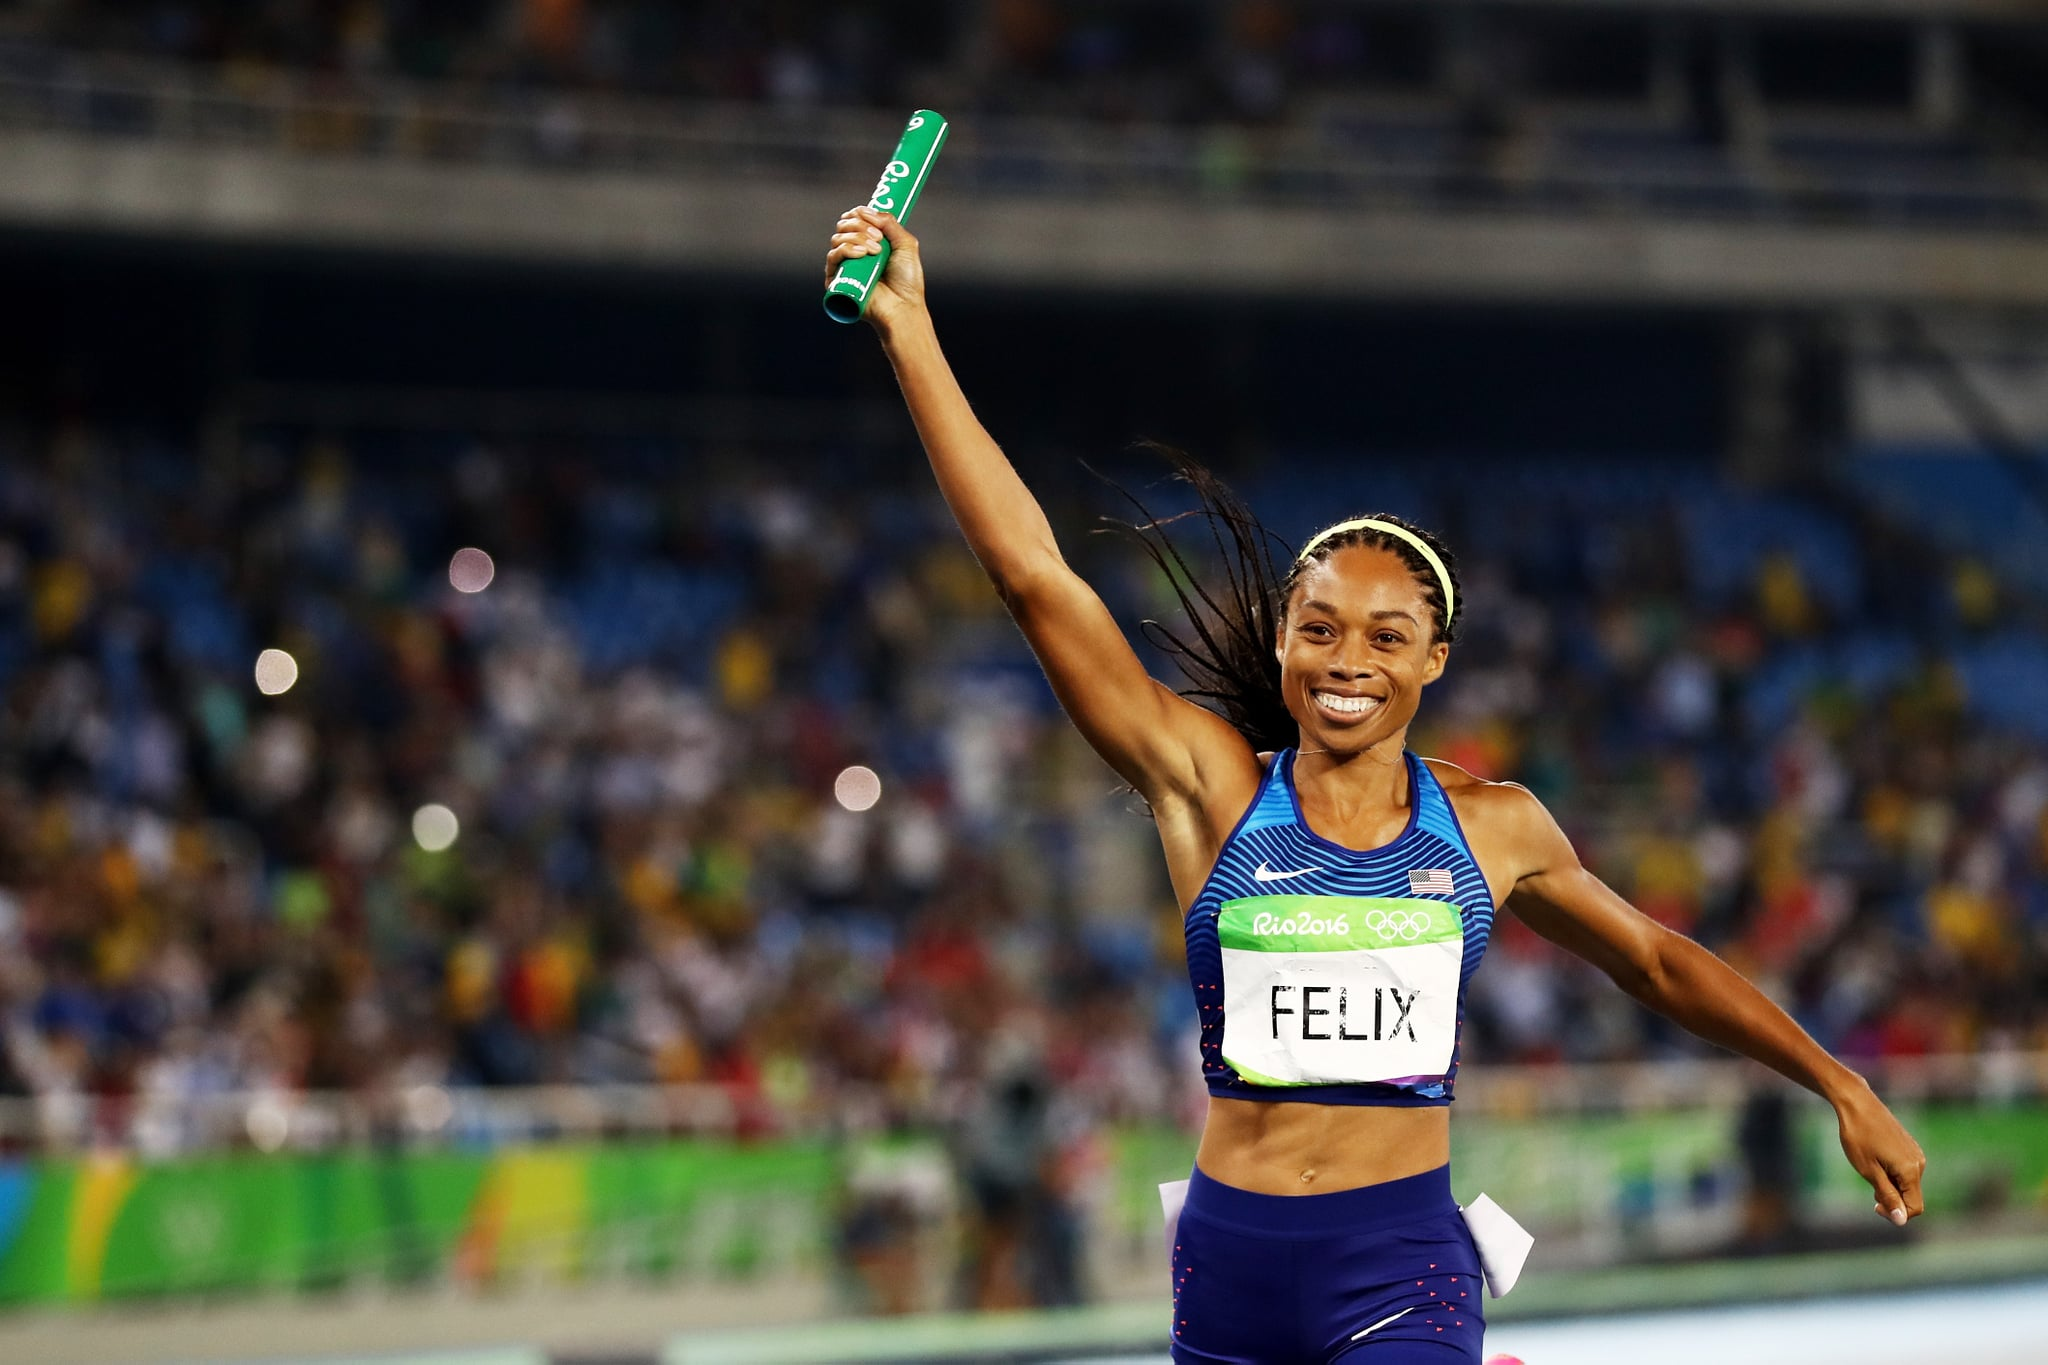 RIO DE JANEIRO, BRAZIL - AUGUST 20:  Allyson Felix of the United States reacts after winning gold during the Women's 4 x 400 meter Relay on Day 15 of the Rio 2016 Olympic Games at the Olympic Stadium on August 20, 2016 in Rio de Janeiro, Brazil.  (Photo by Ezra Shaw/Getty Images)